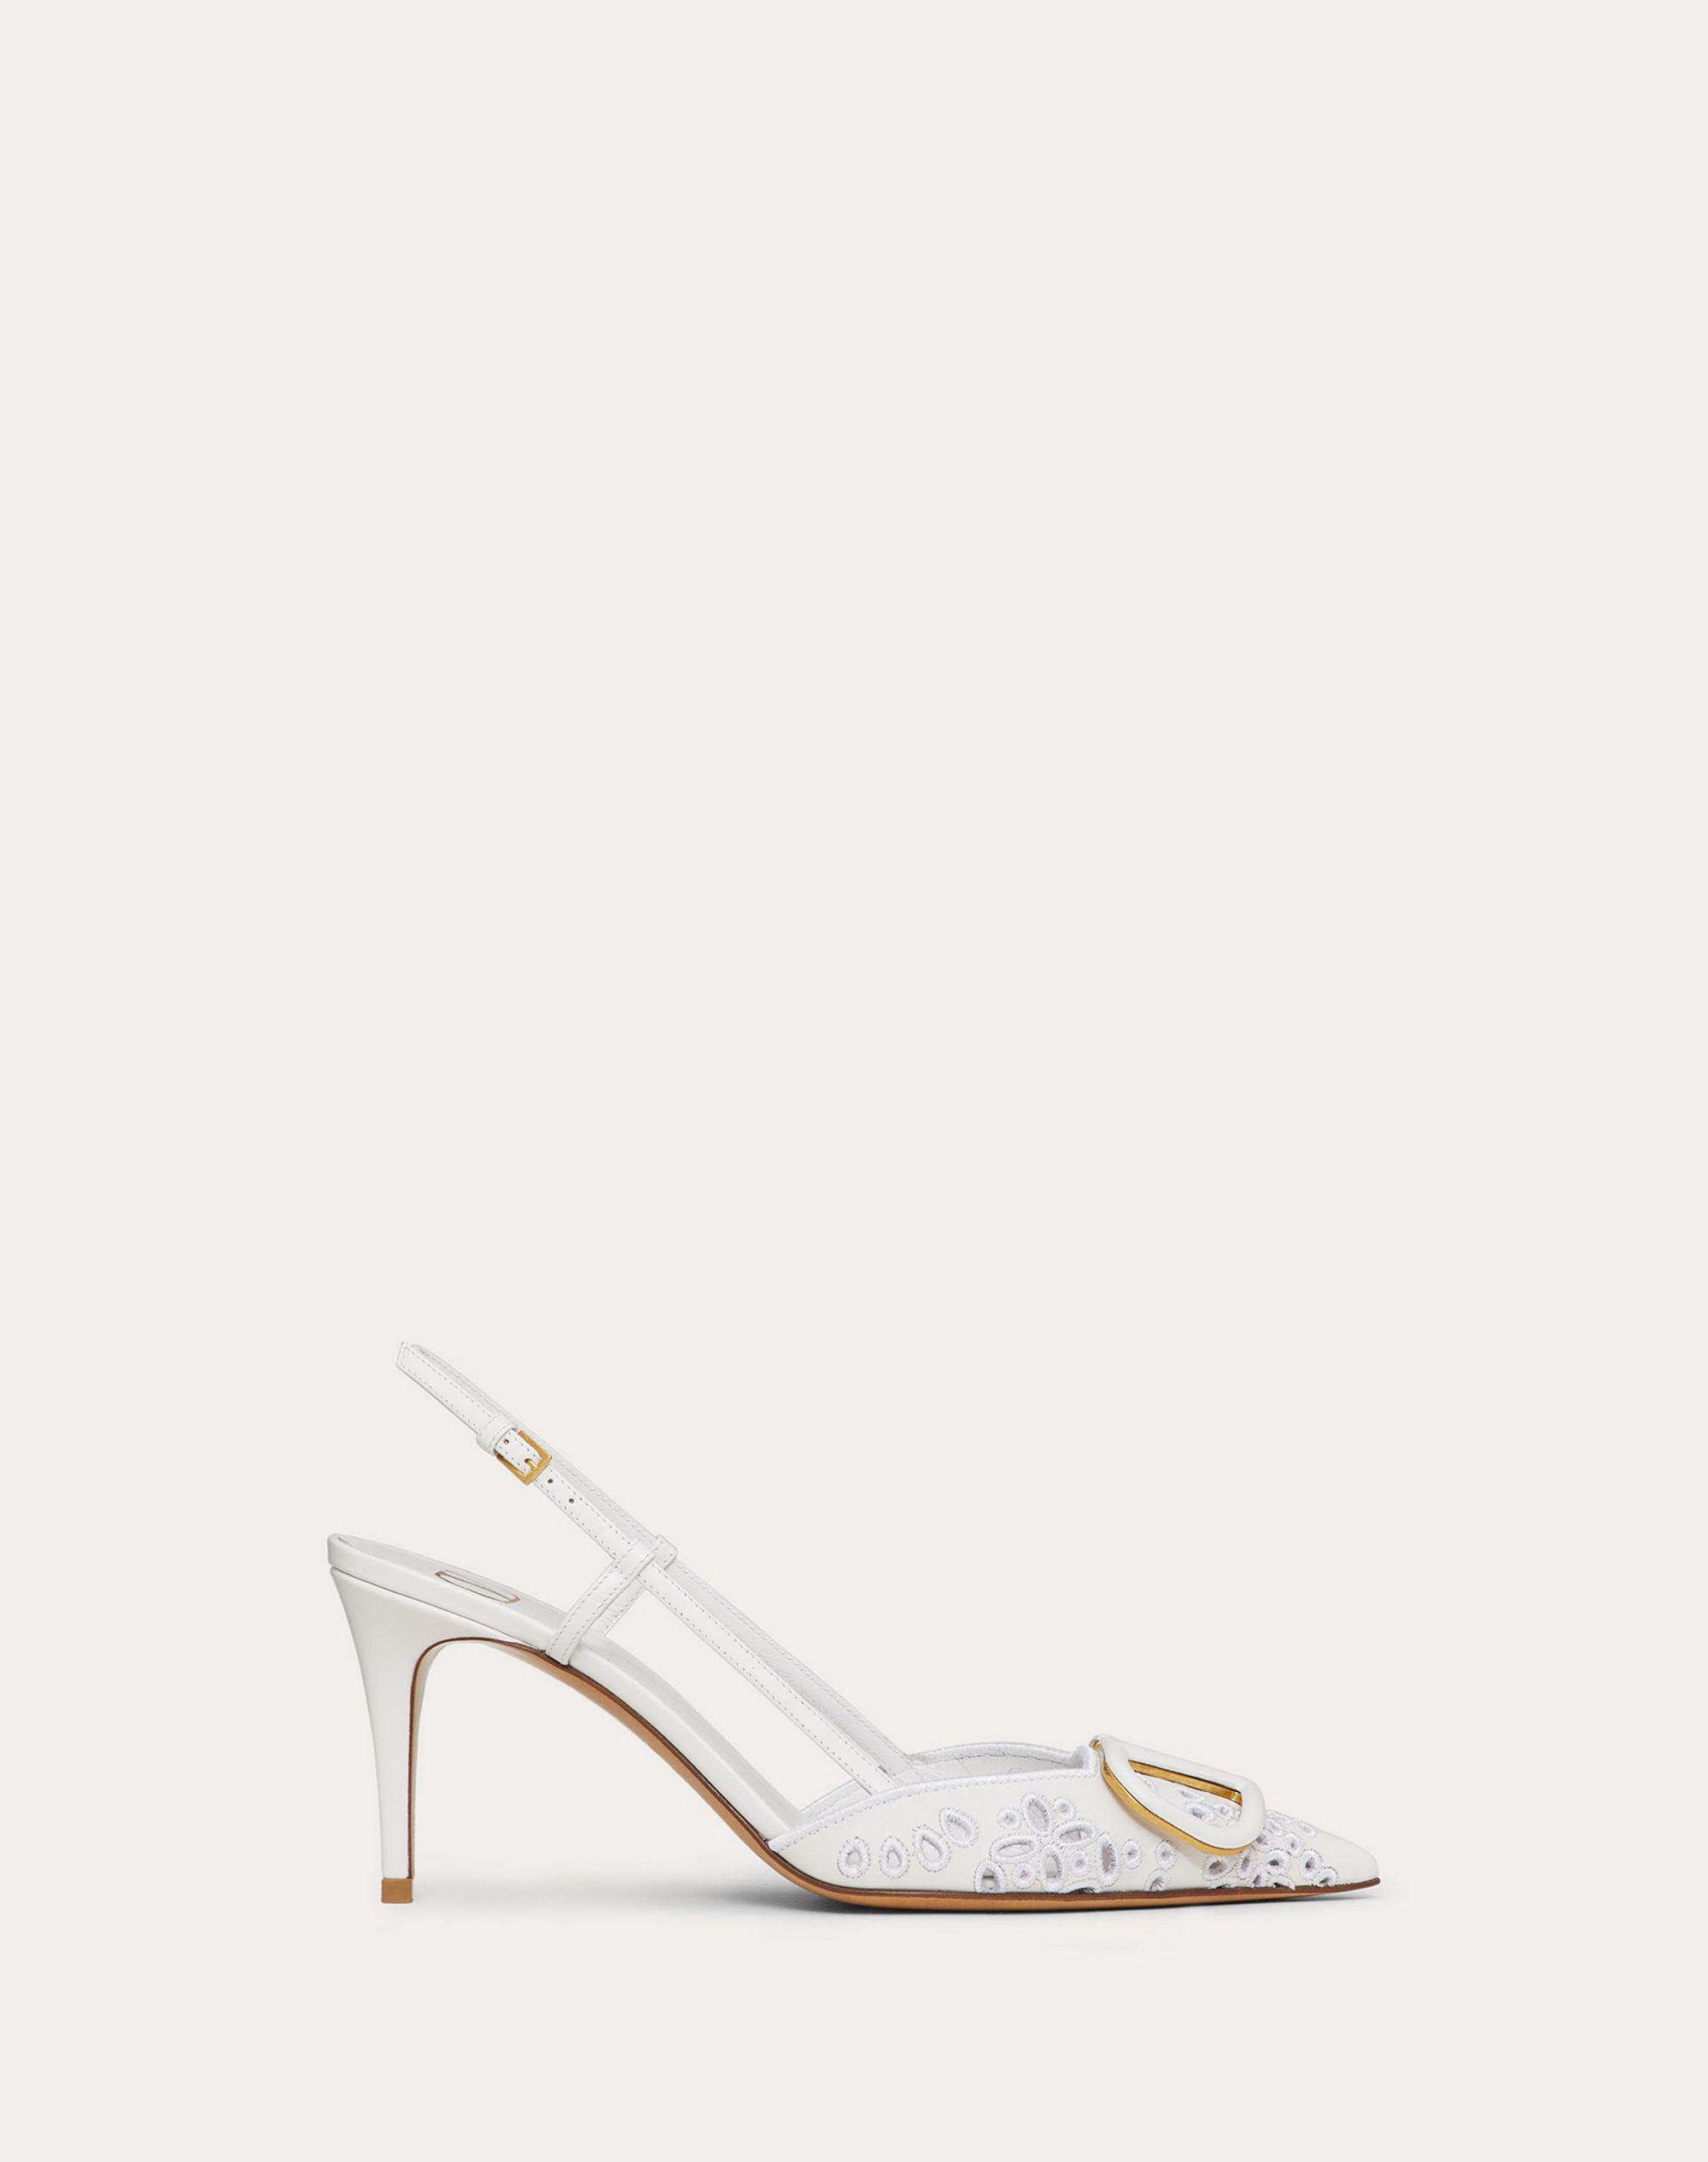 VLOGO SIGNATURE CALFSKIN SLINGBACK PUMP WITH SAN GALLO EMBROIDERY 80 MM